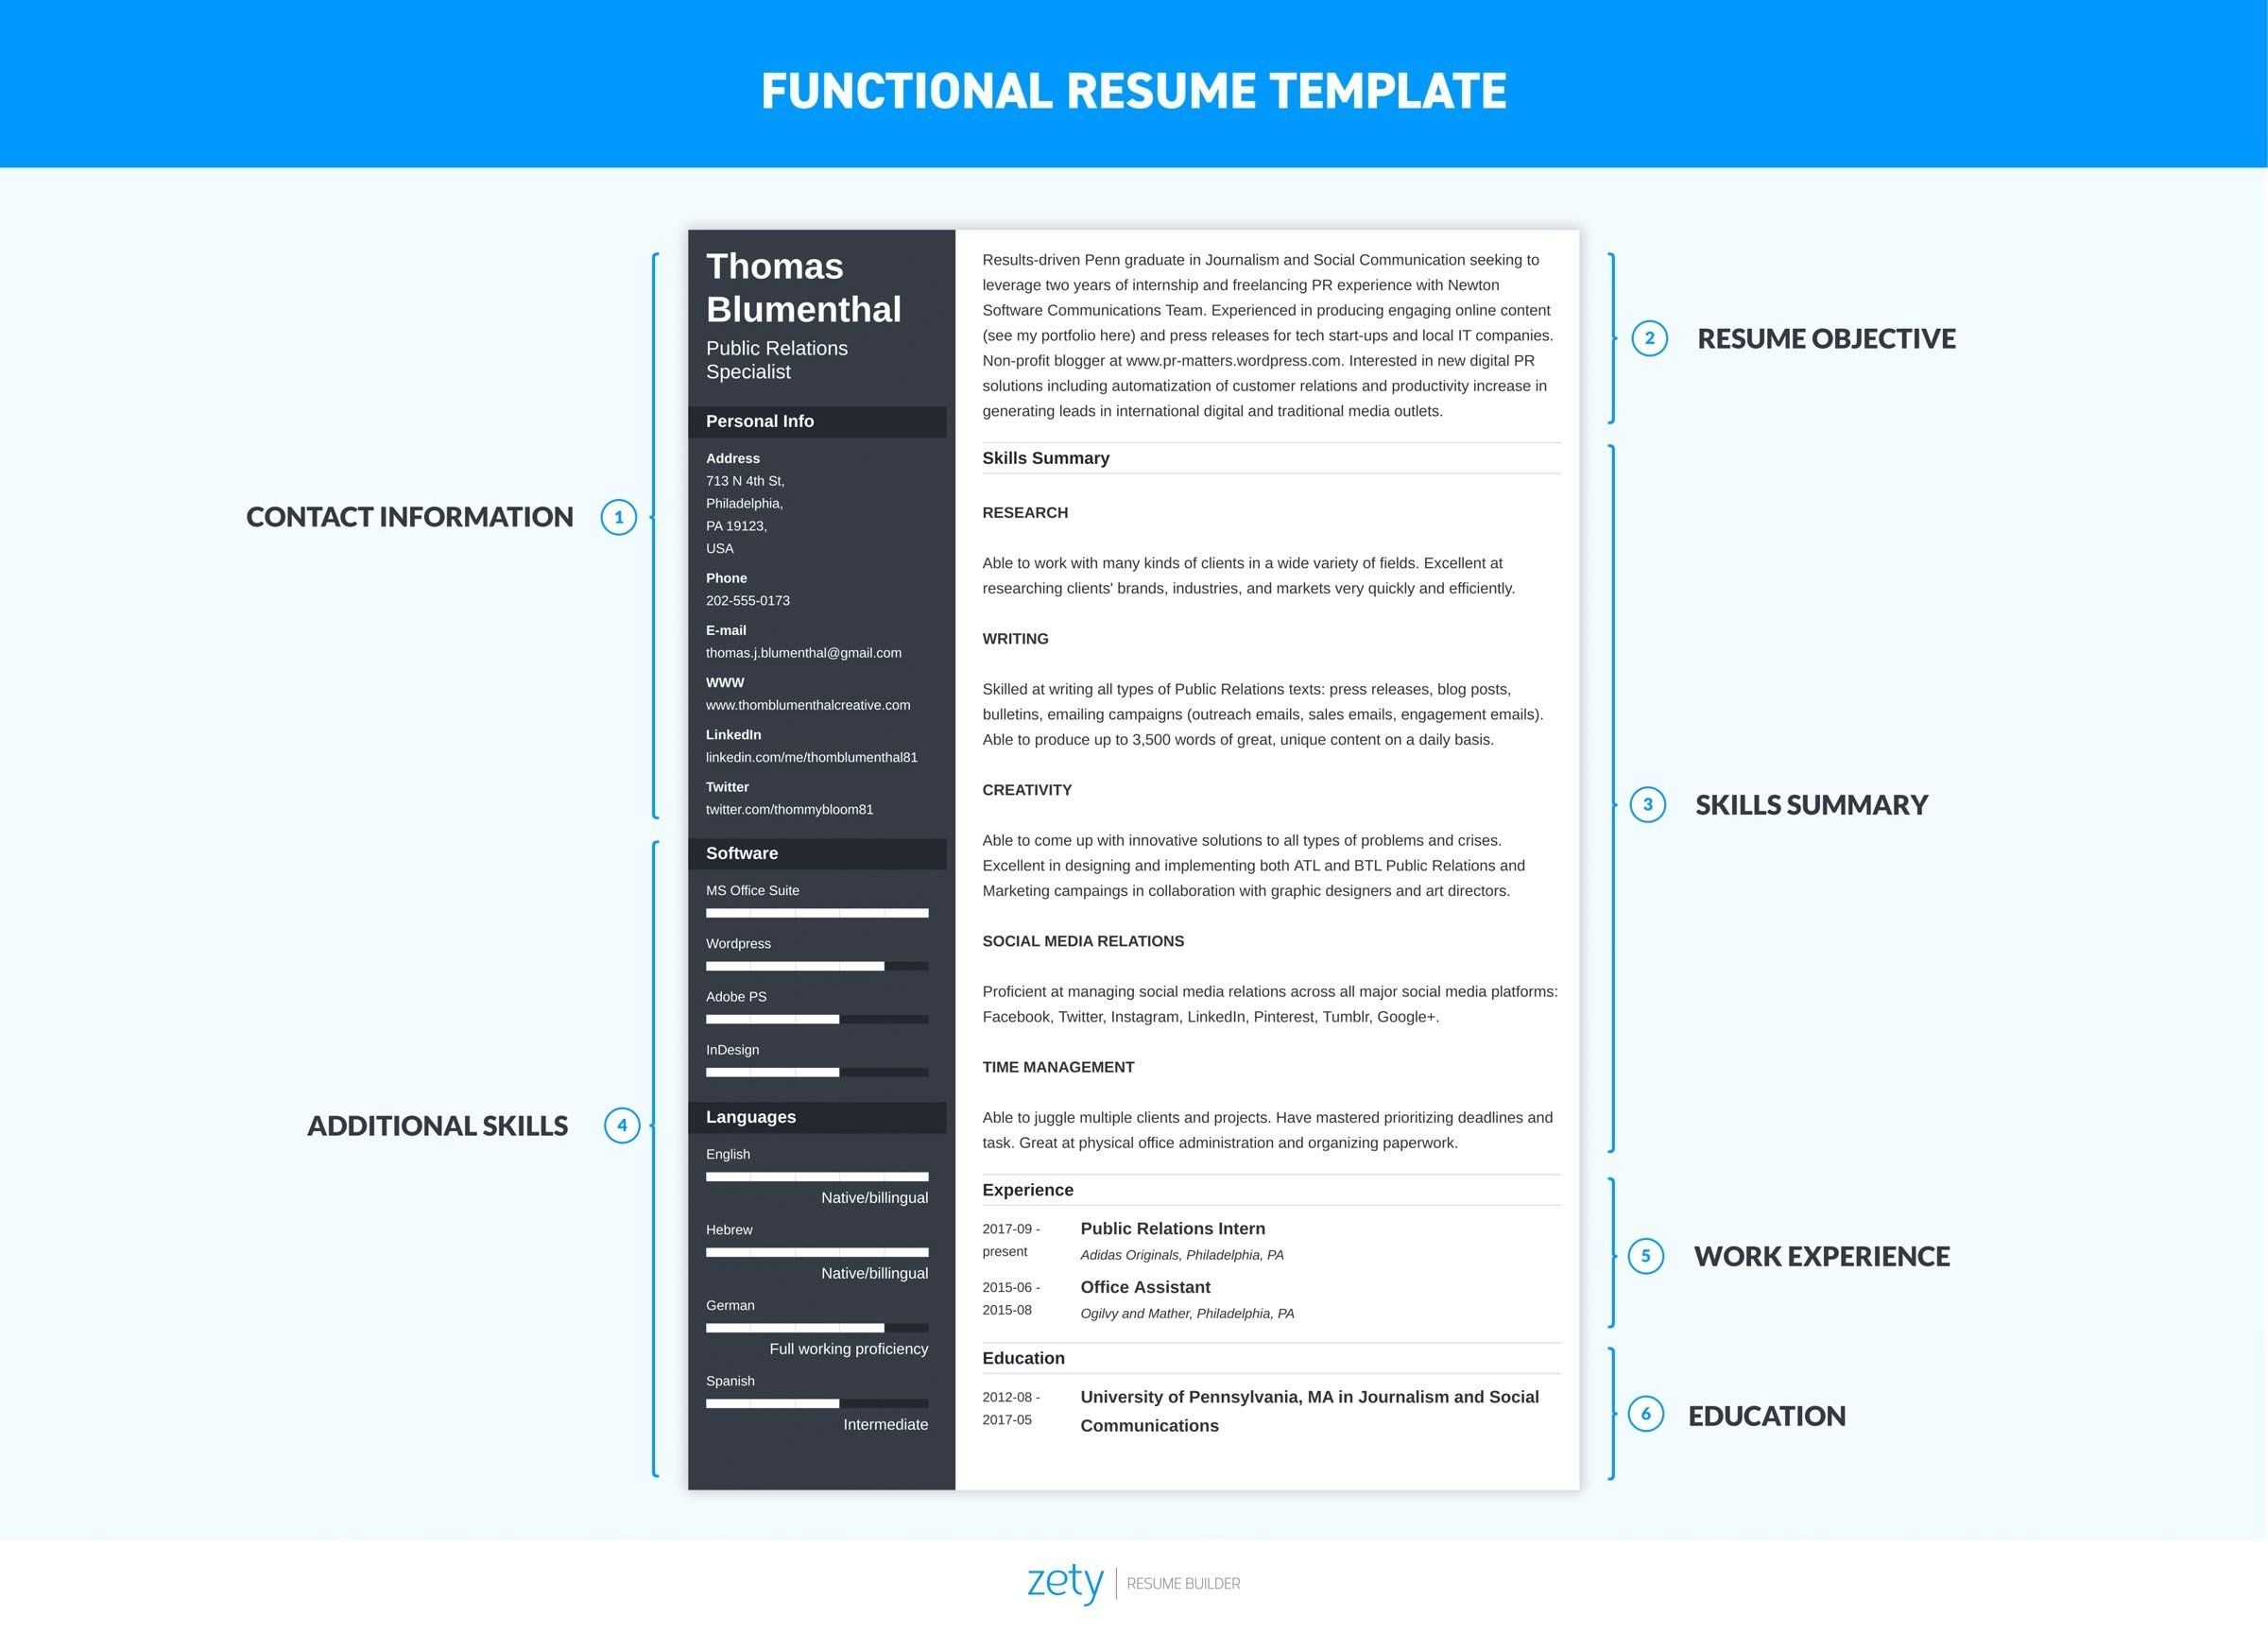 Functional Resume Examples & Skills Based Templates